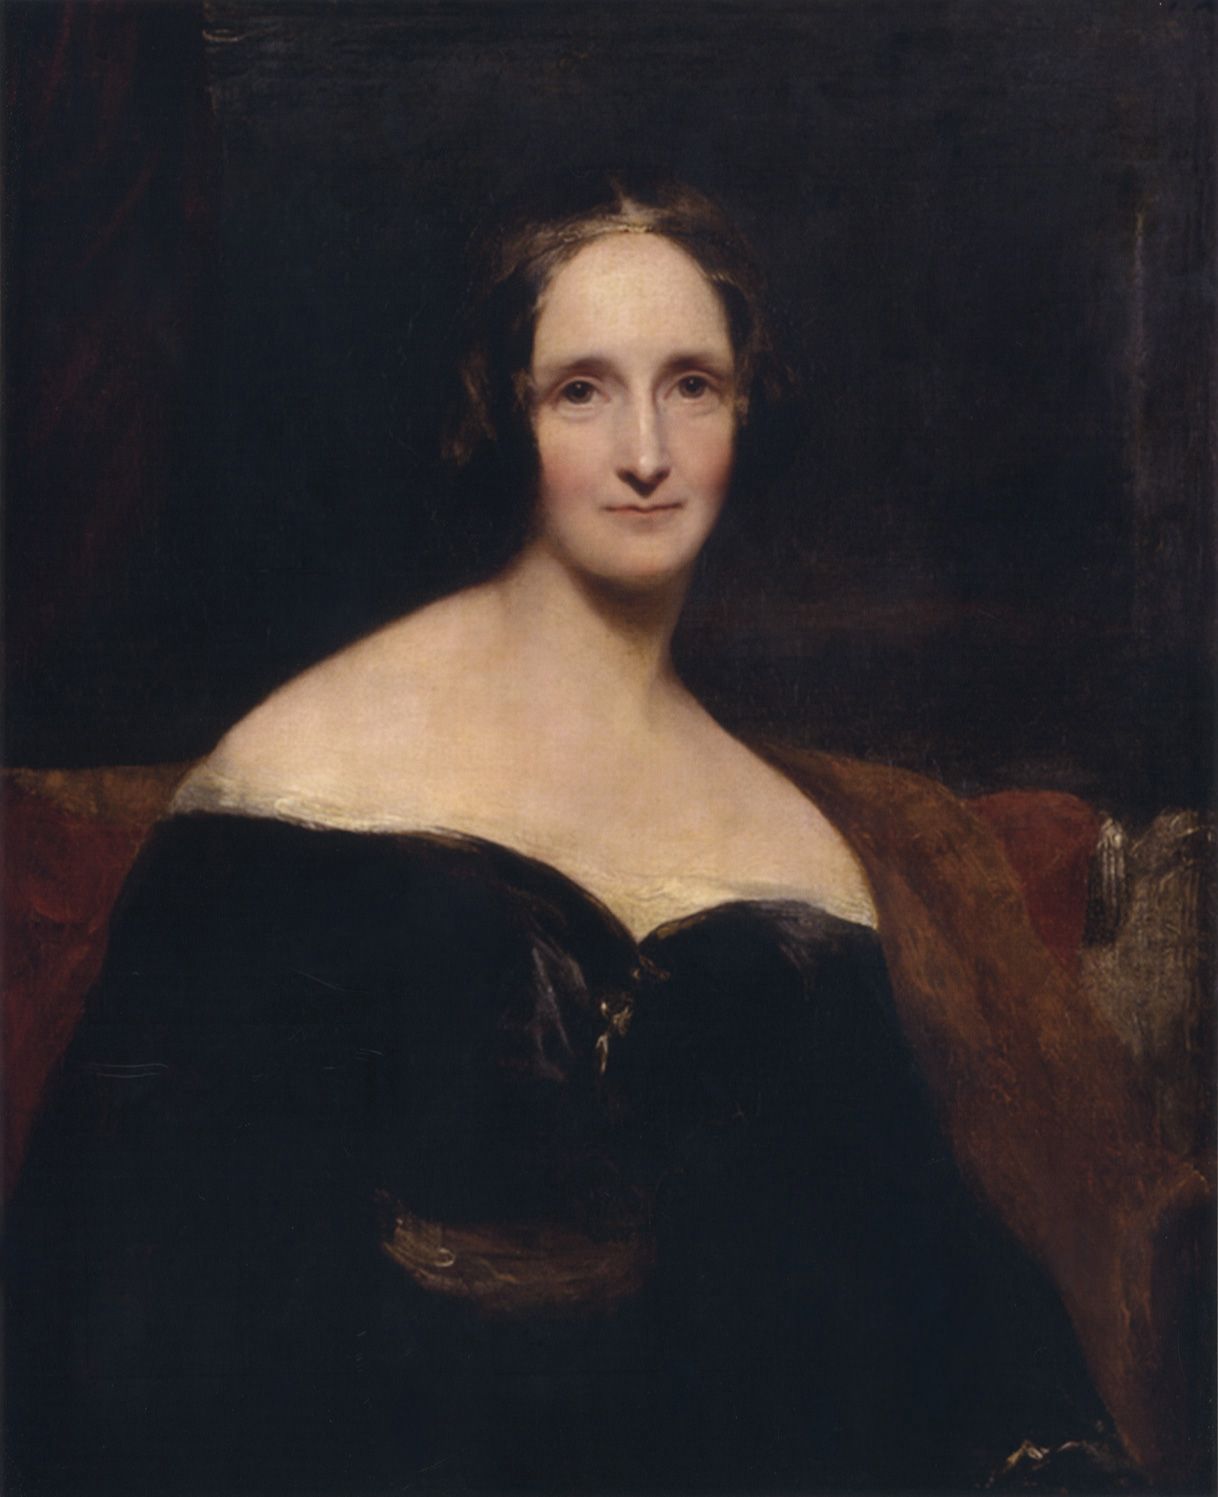 Portrait of Mary Shelley by Richard Rothwell, 1840 (via    Wikimedia Commons   )